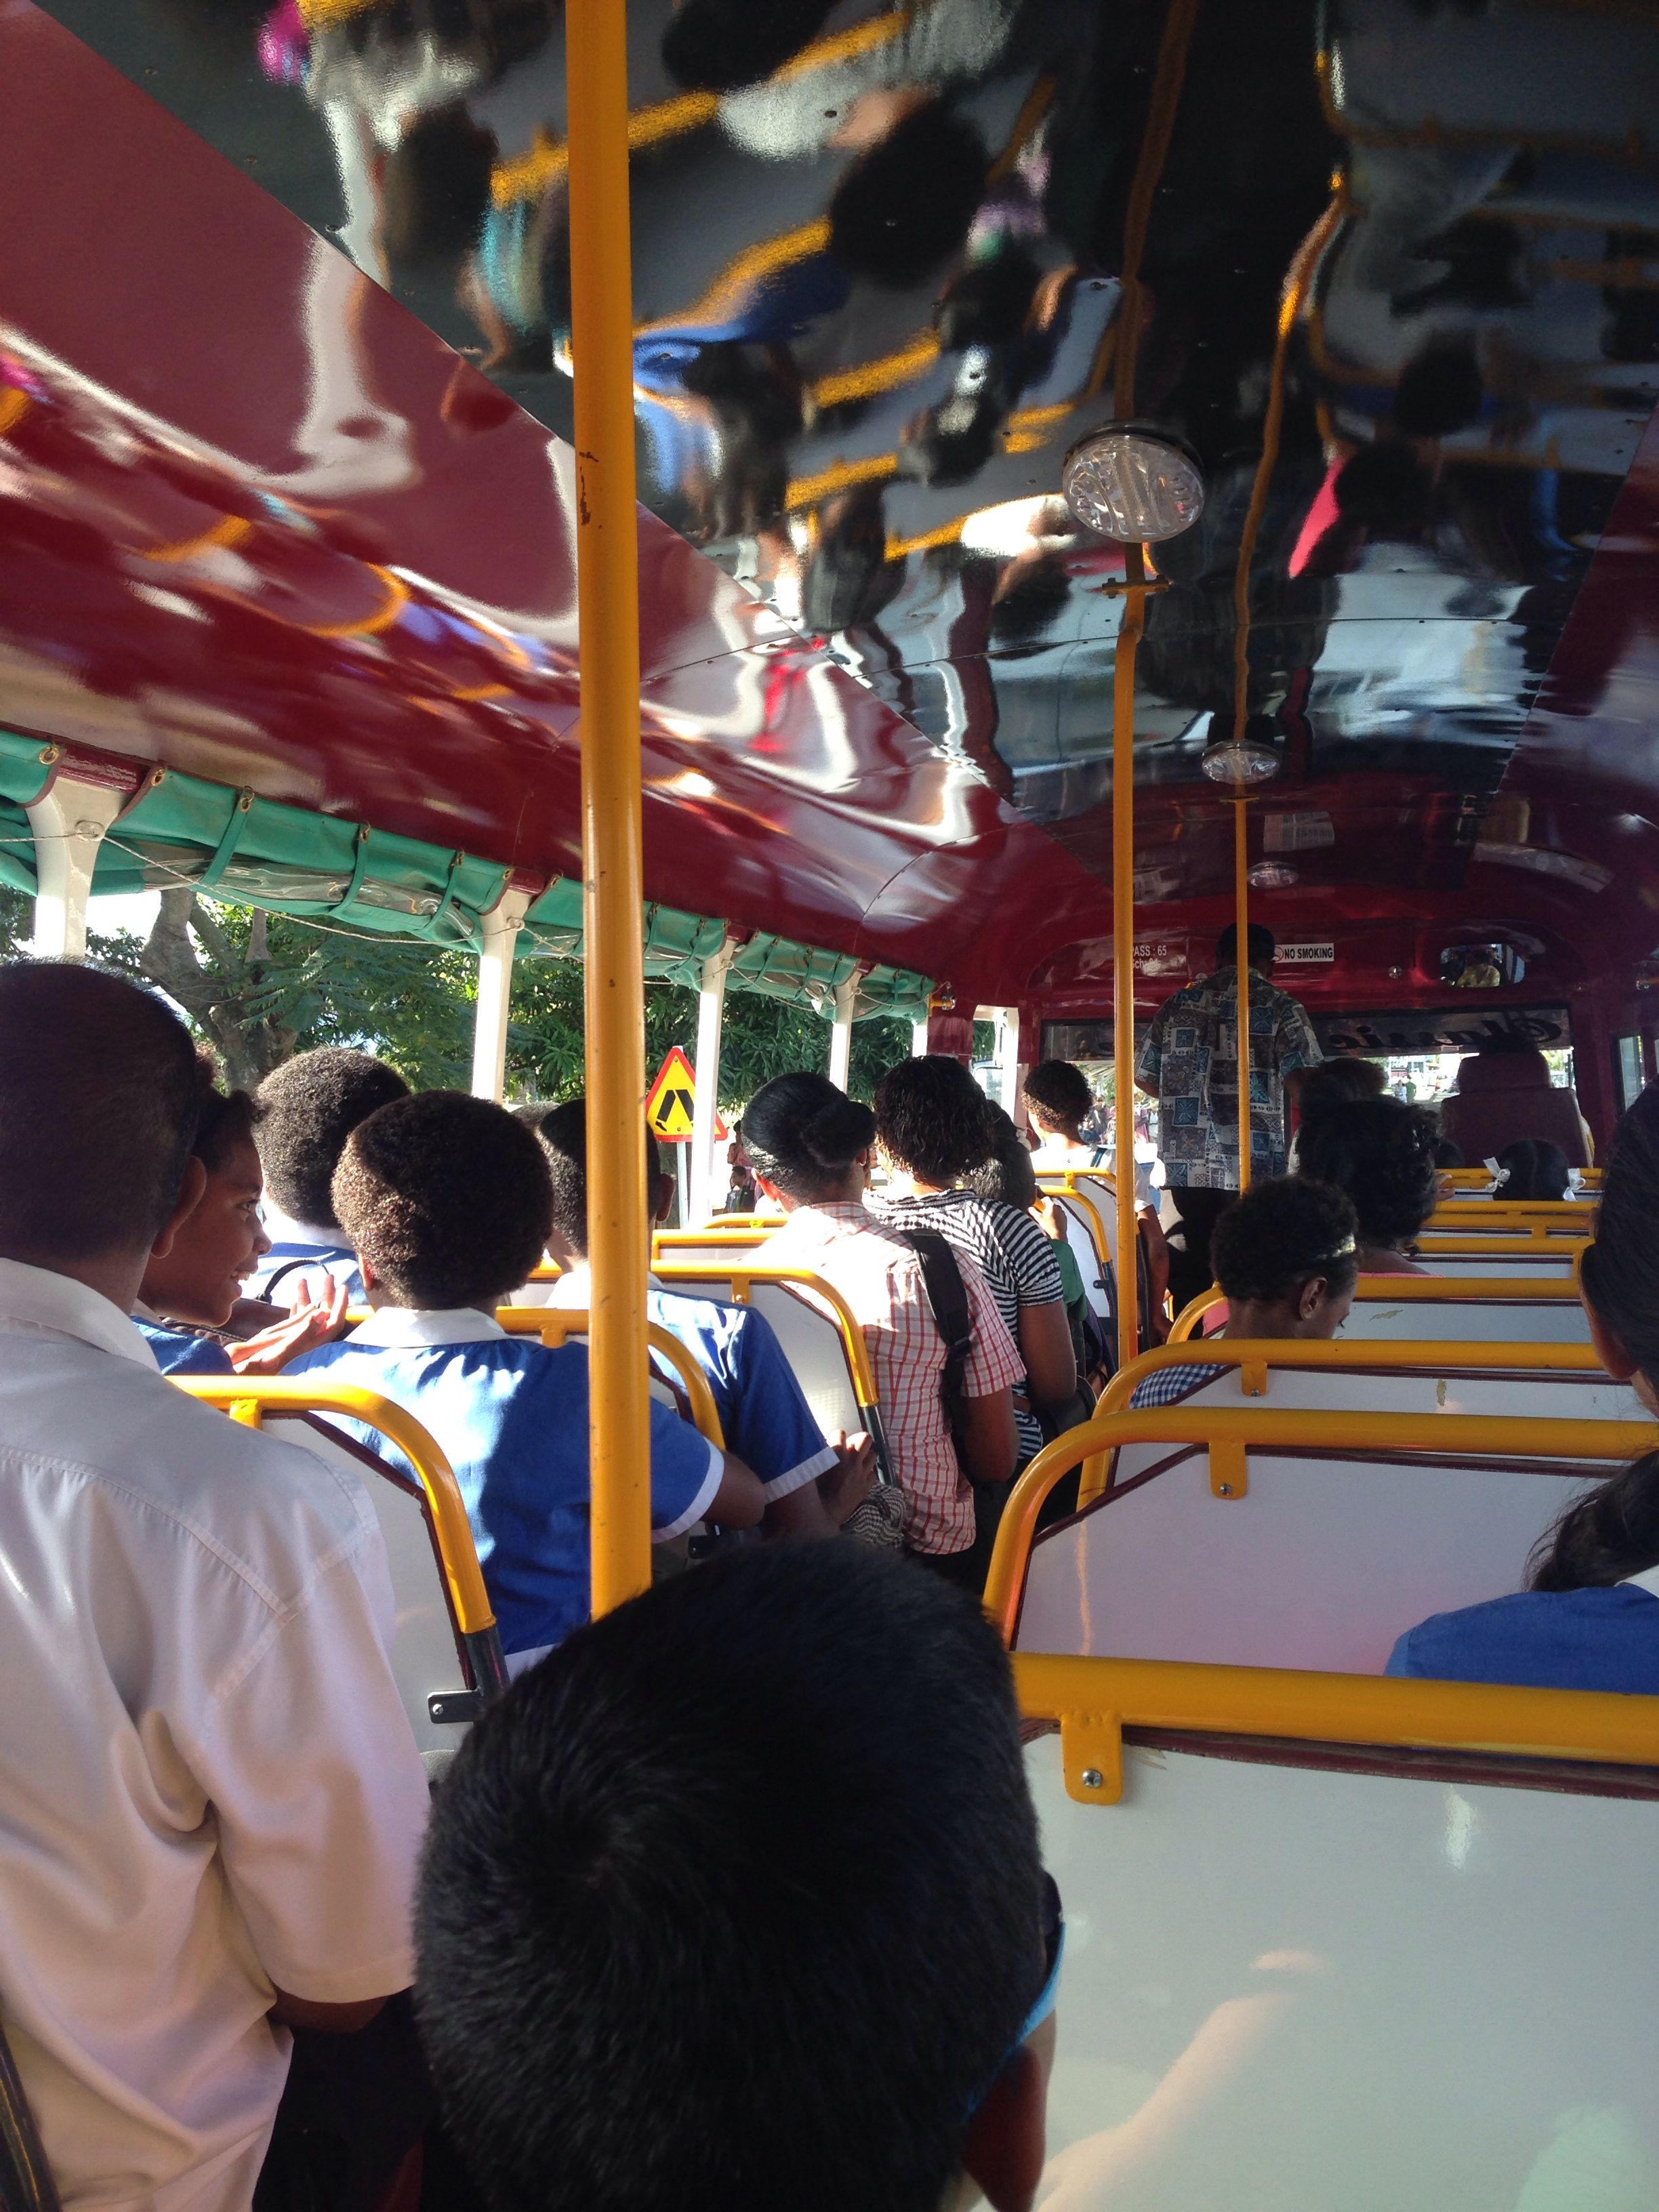 A milestone, #traveling by #local #bus from mt view to #namaka by myself! #nadi #fiji #islandlife #nomad